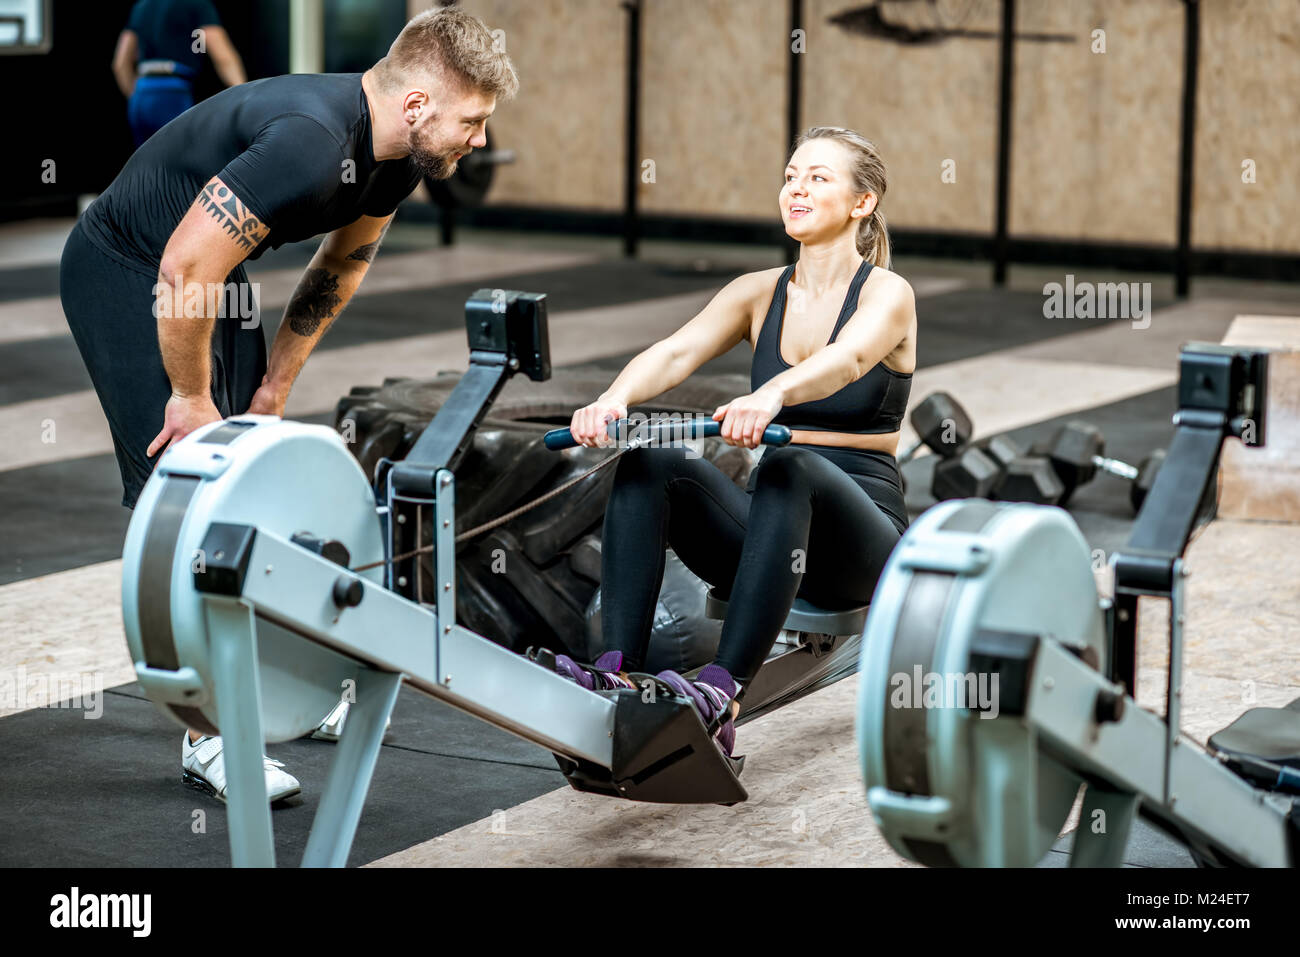 Coach training woman on the exercise machine - Stock Image